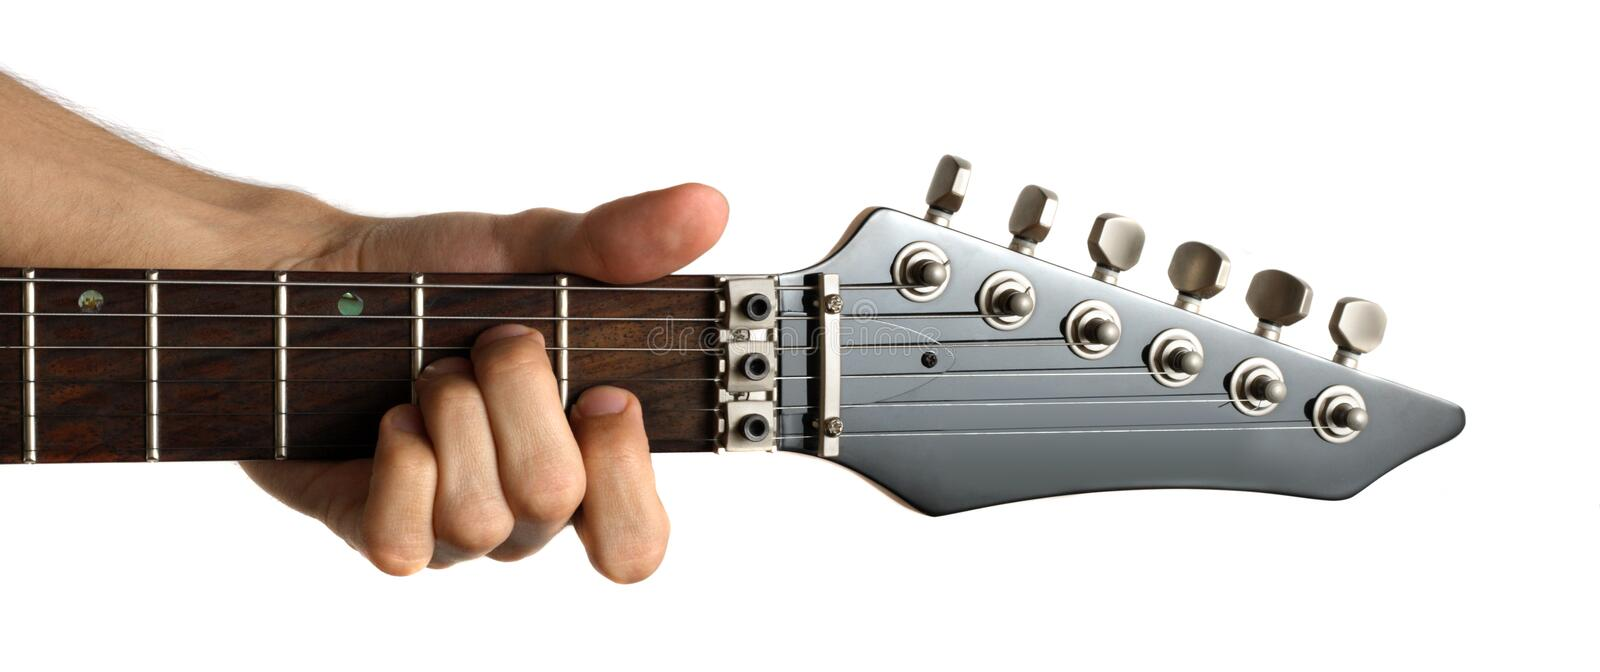 Playing an electric guitar. Hand fingering 'Am' chord on electric guitar, isolated on white background stock photo